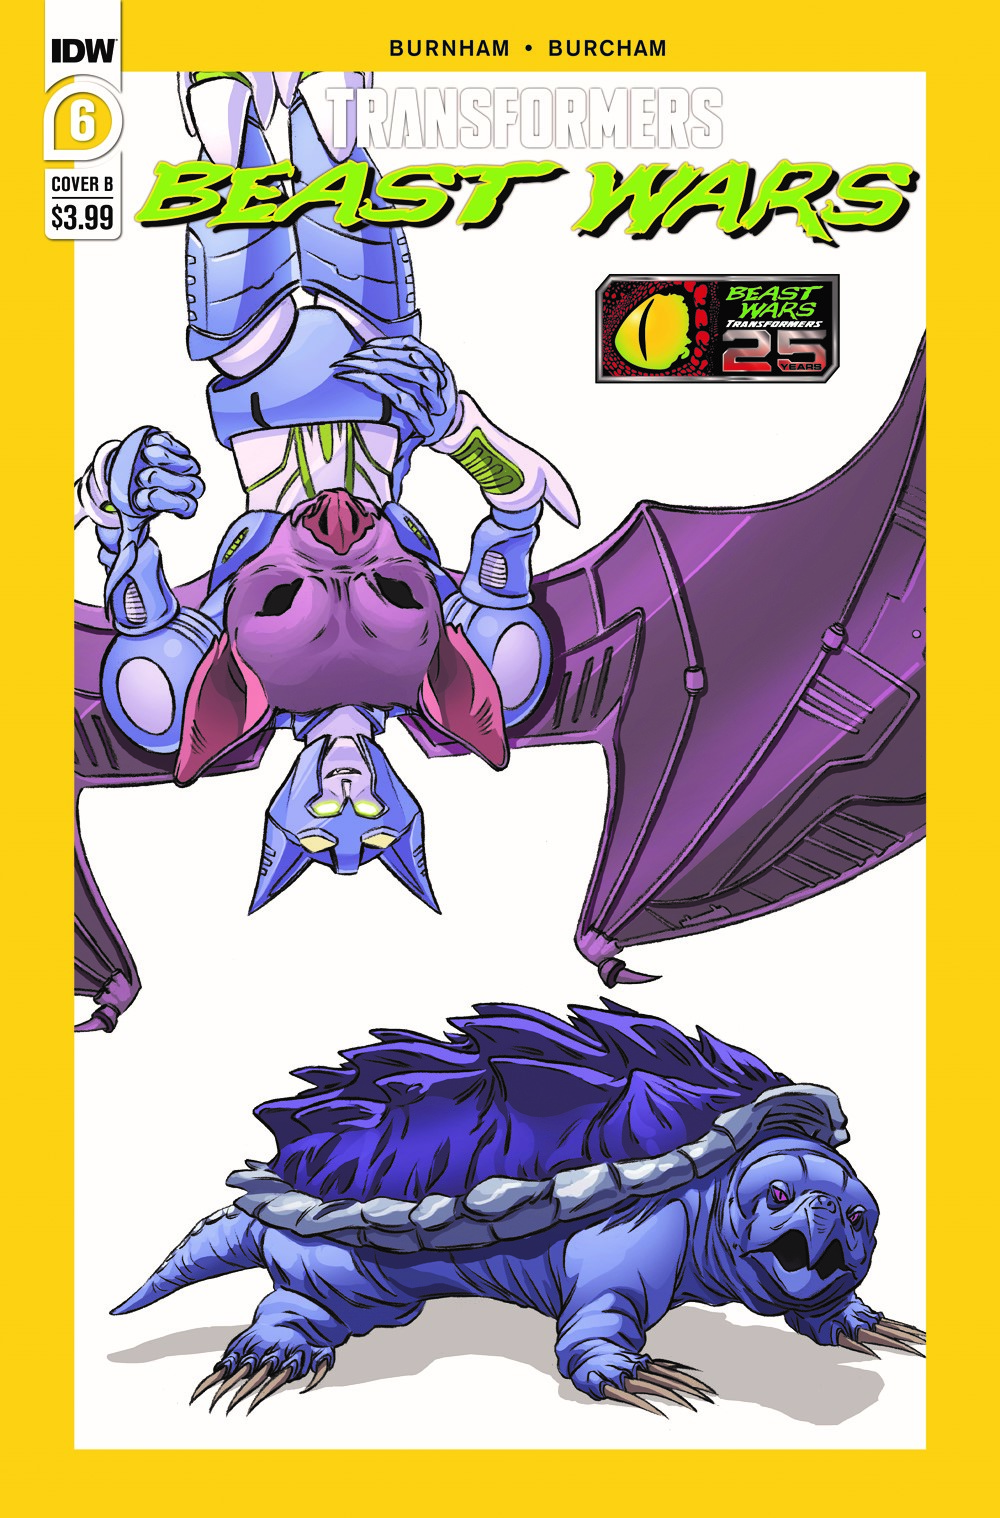 TFBW06-Cover-B ComicList: IDW Publishing New Releases for 07/28/2021